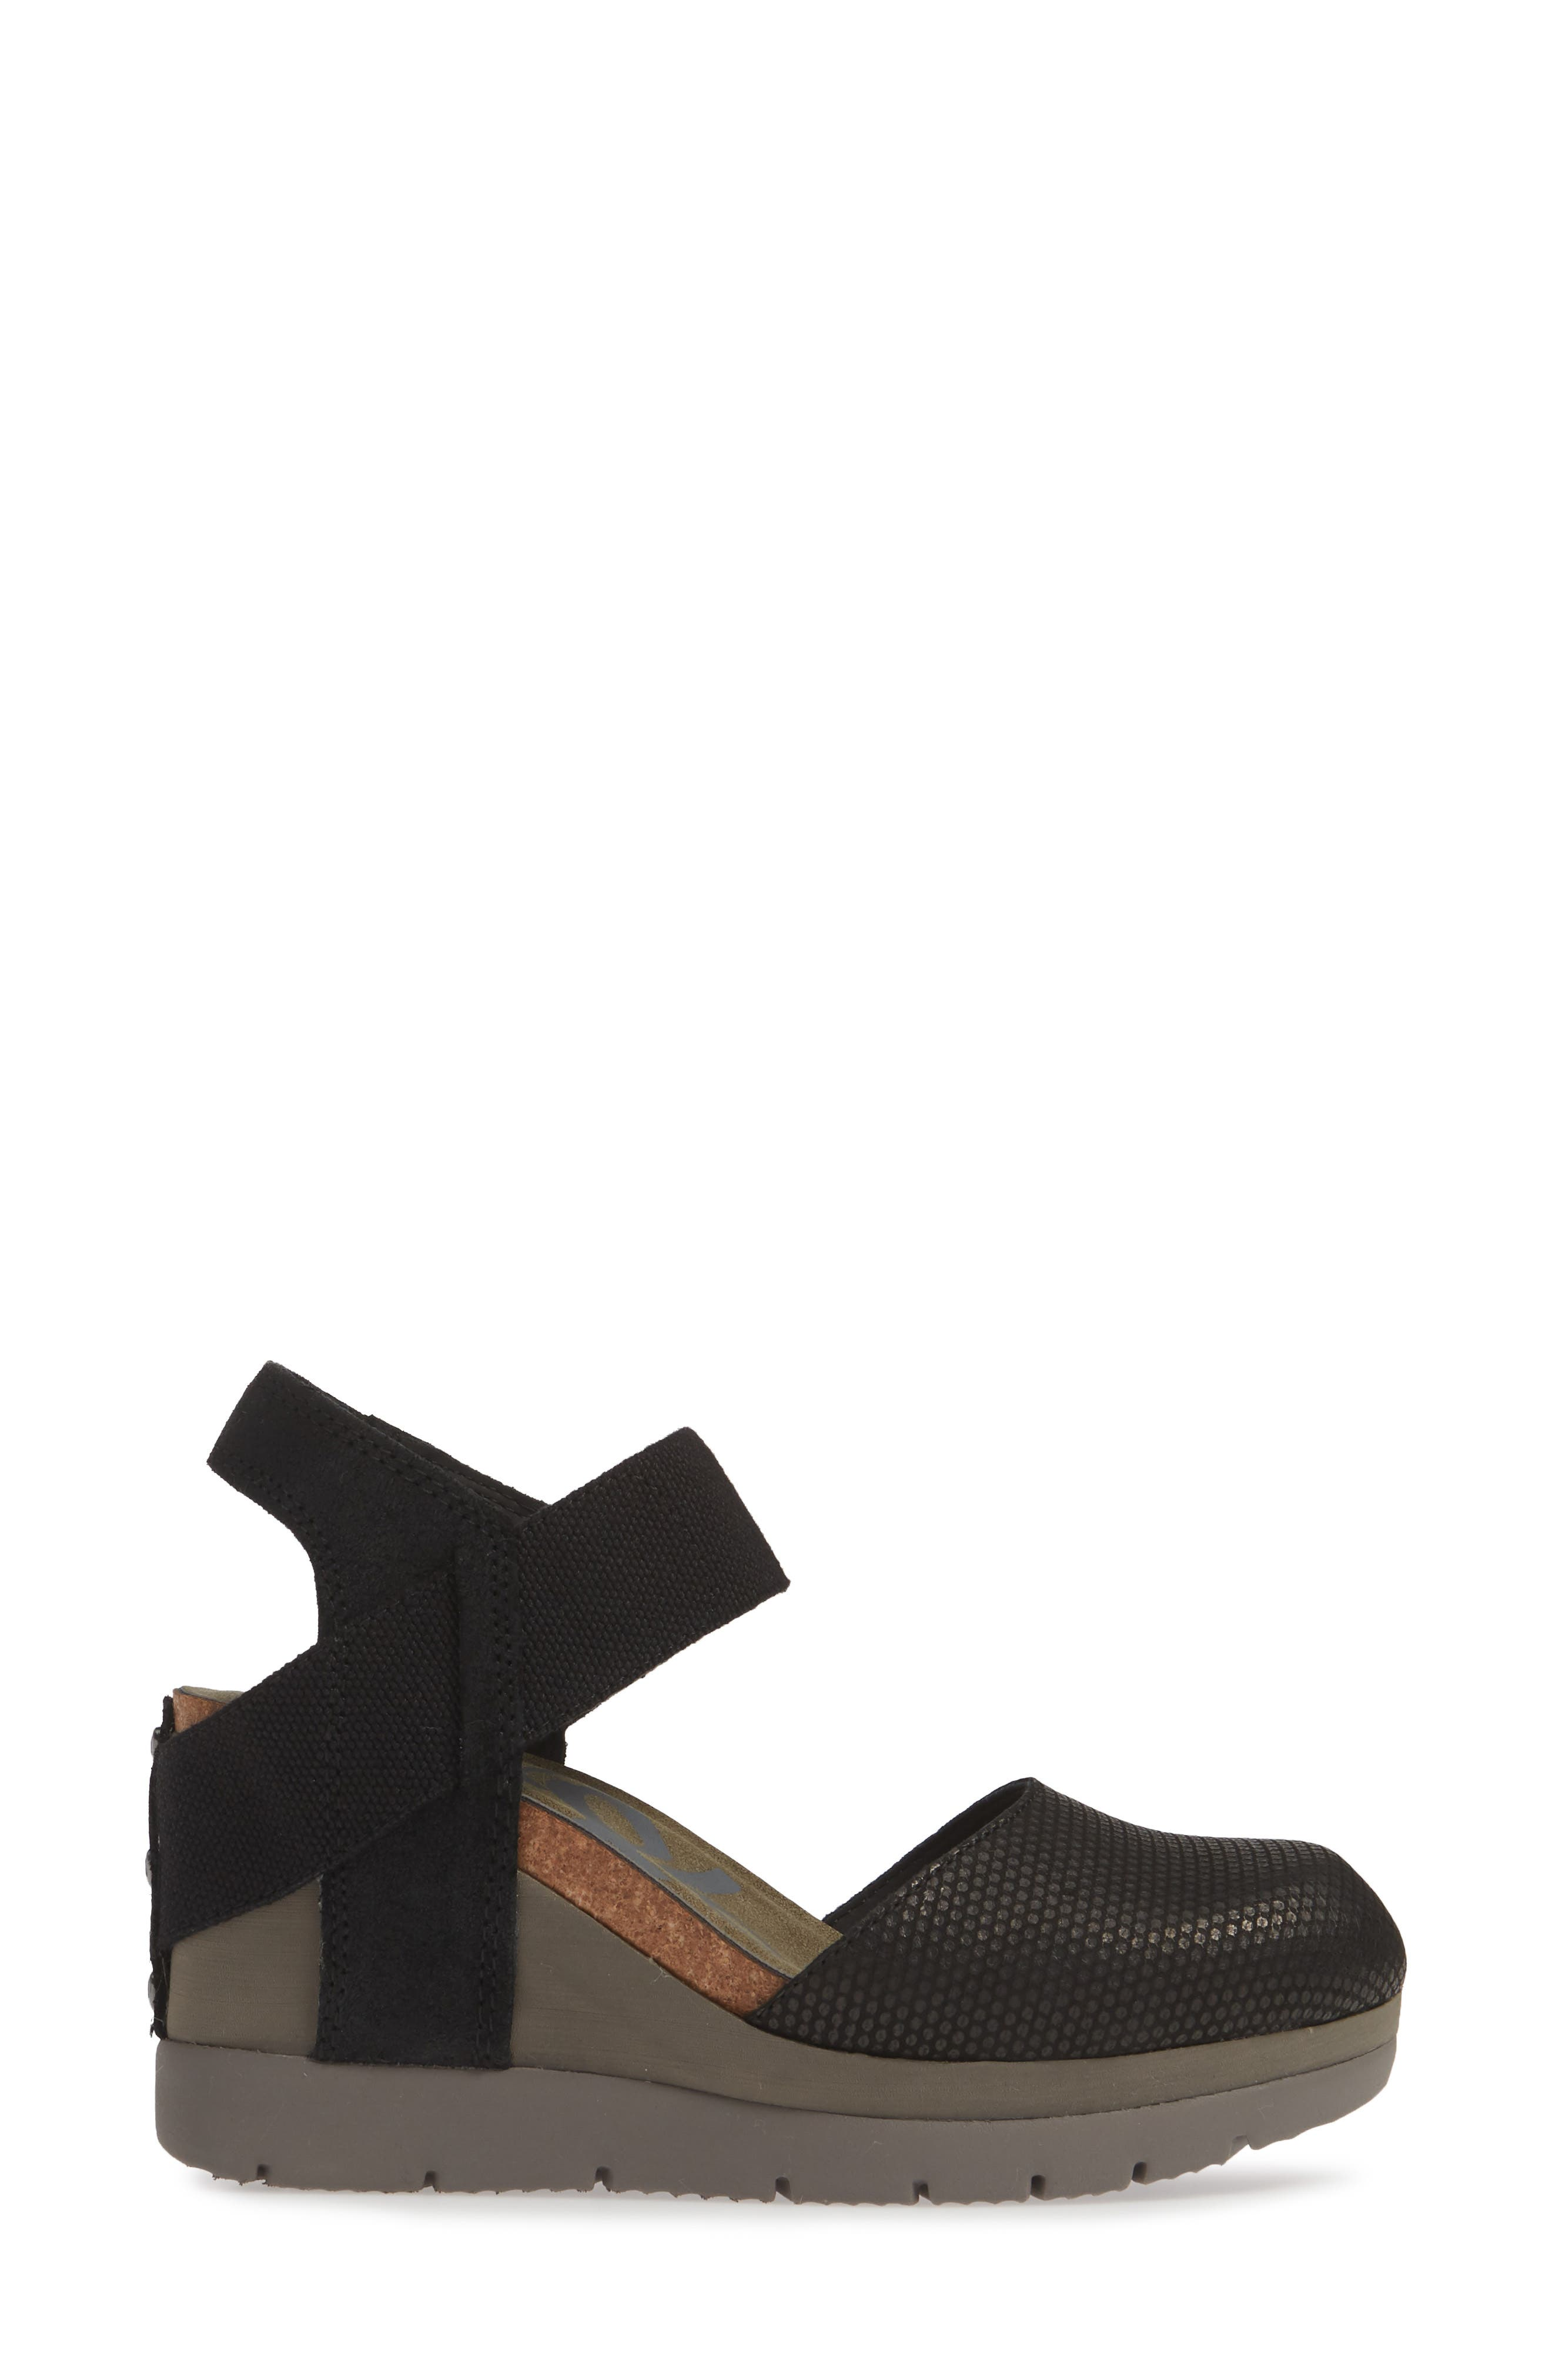 Carry On Wedge Sandal,                             Alternate thumbnail 3, color,                             BLACK LEATHER